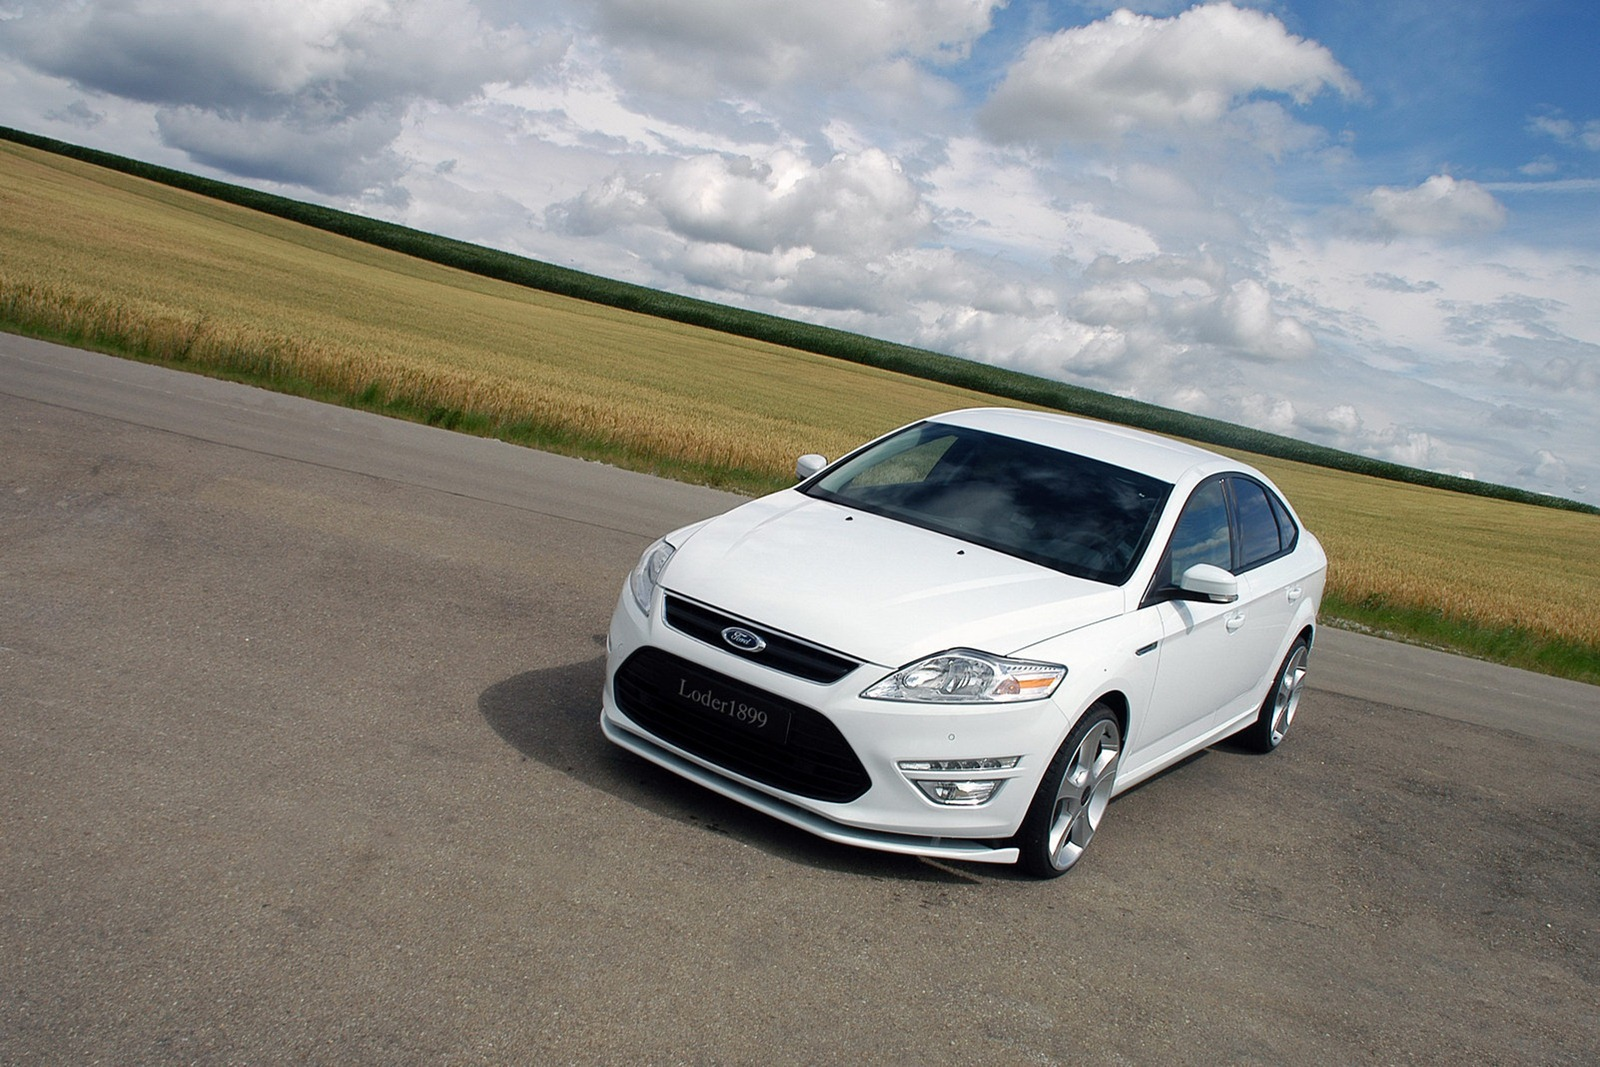 Ford Mondeo tuned by Loder1899